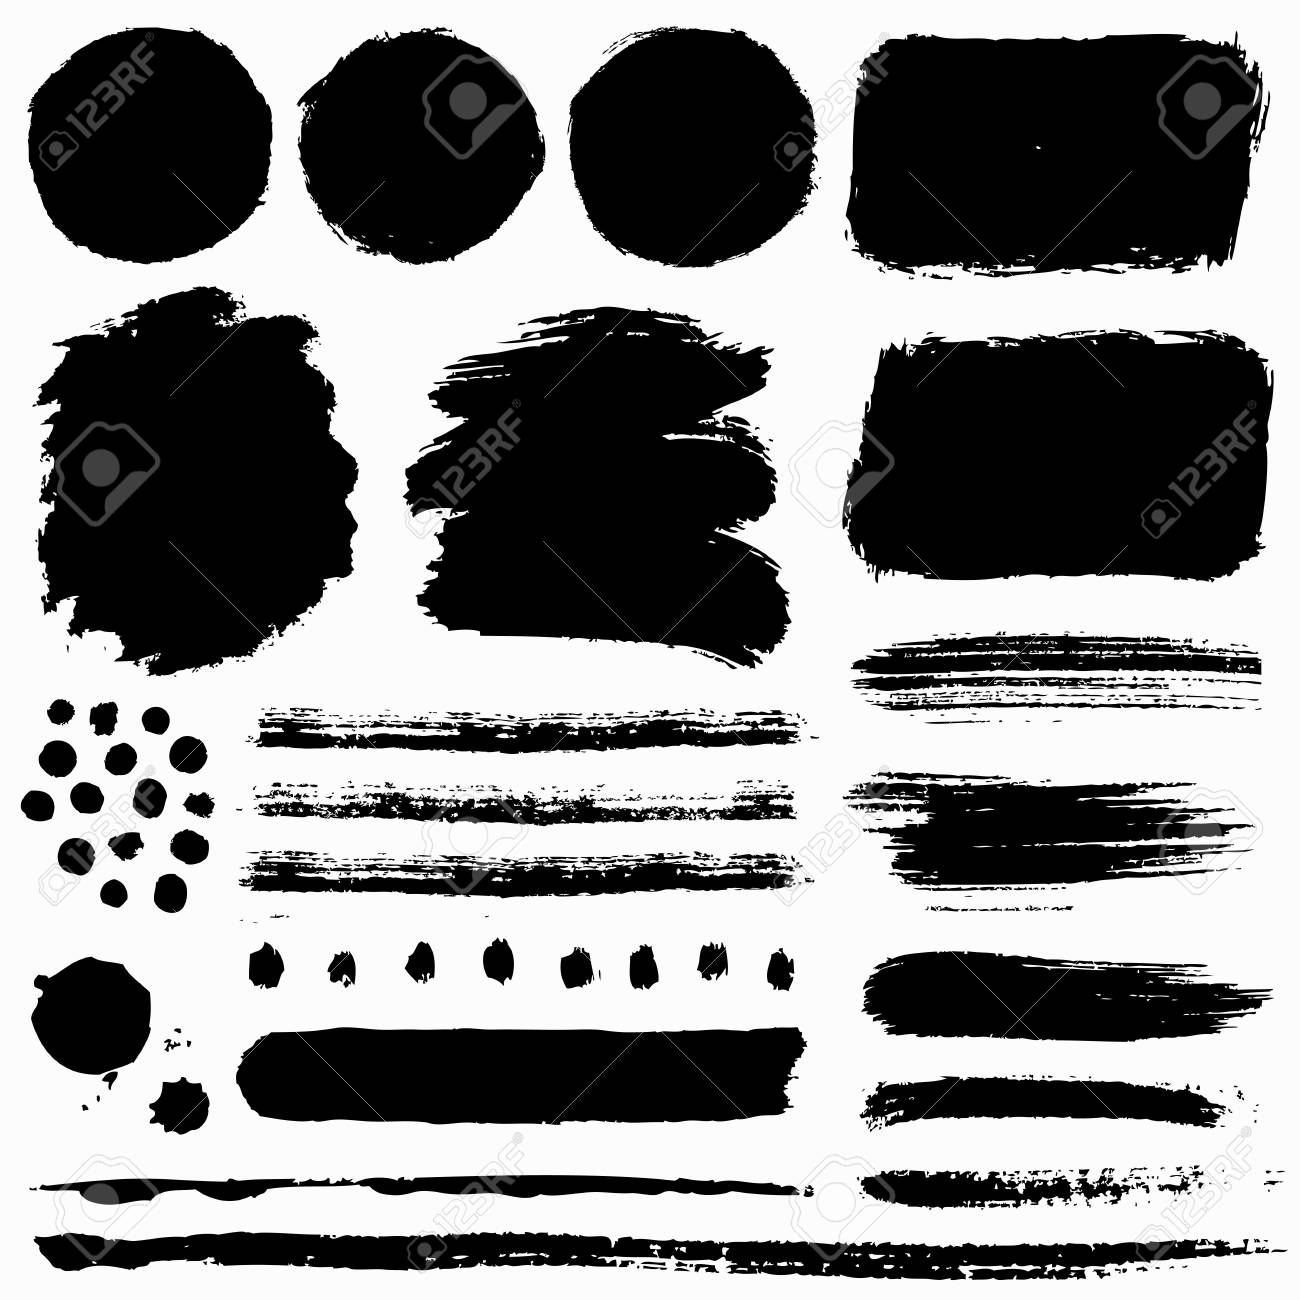 Paint brush strokes and grunge stains isolated on white background. Black vector design elements for paintbrush texture, frame, background, banner or text box. Freehand drawing collection. - 125026866